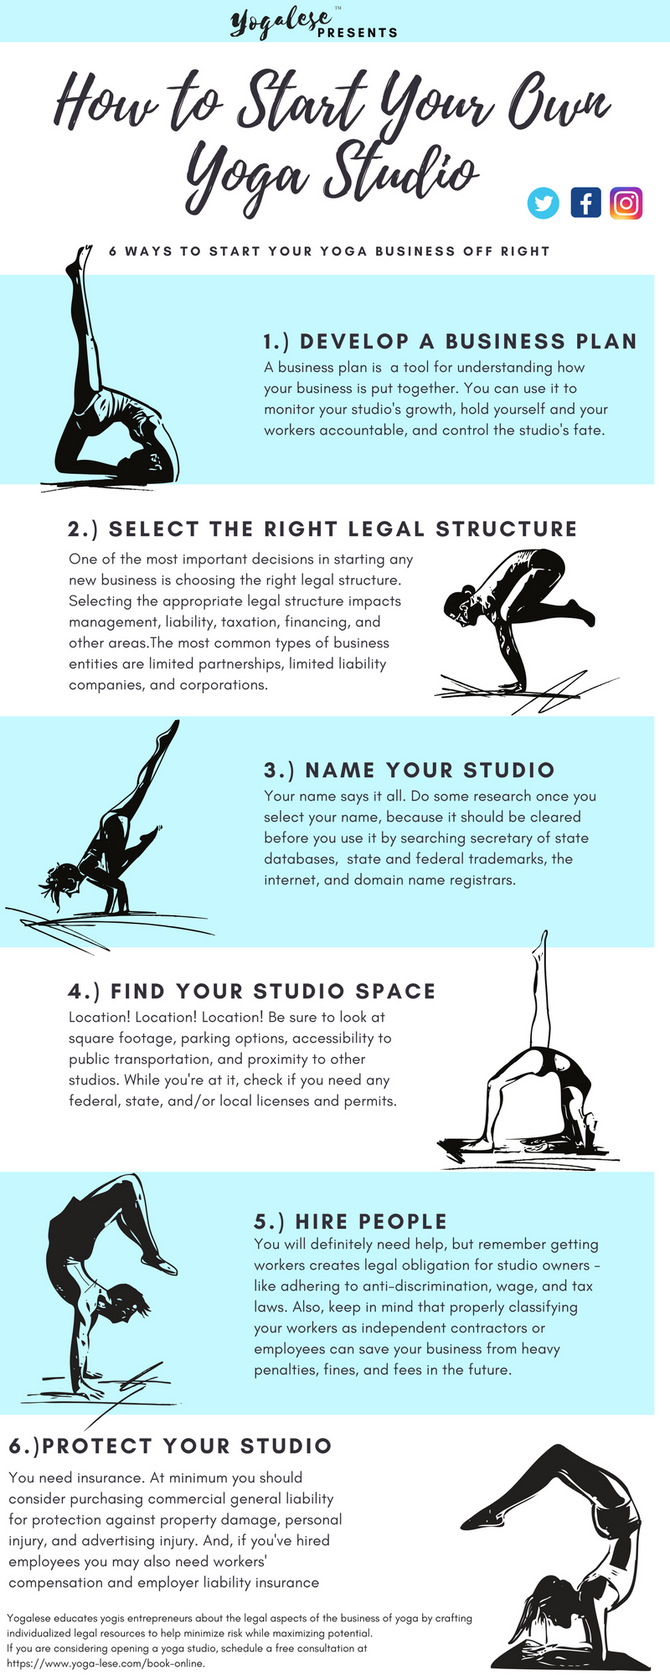 How to Start Your Own Yoga Studio